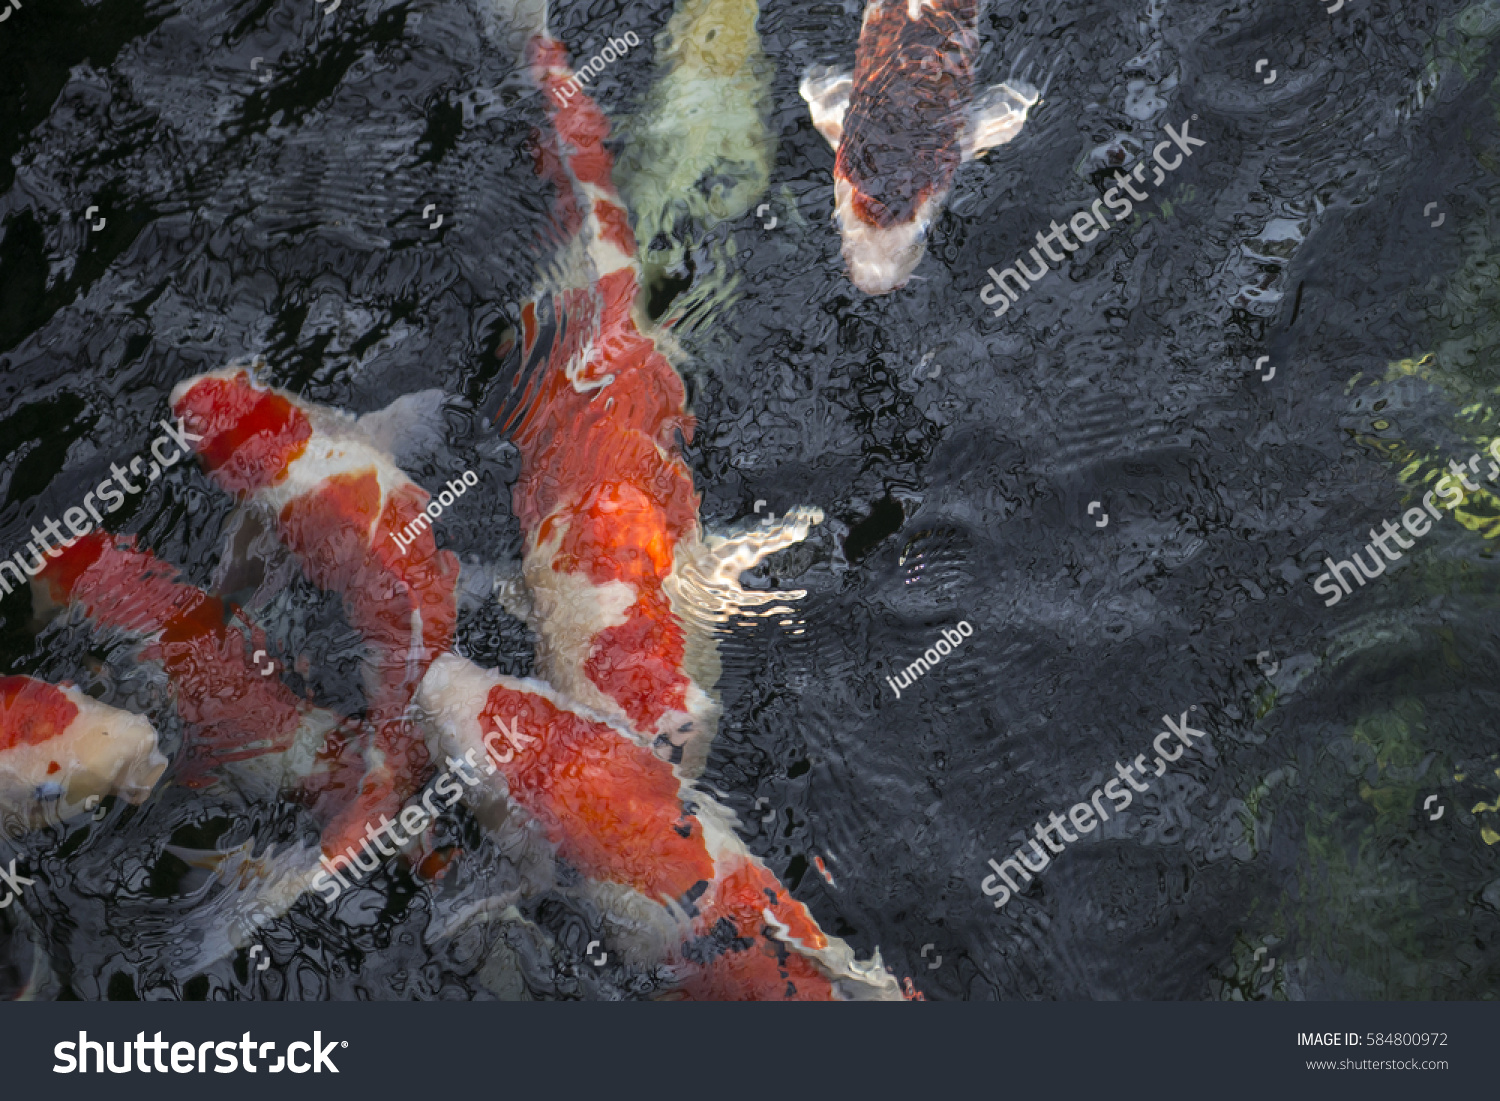 Colorful koi fish pond japanese carp stock photo 584800972 for Colourful koi fish